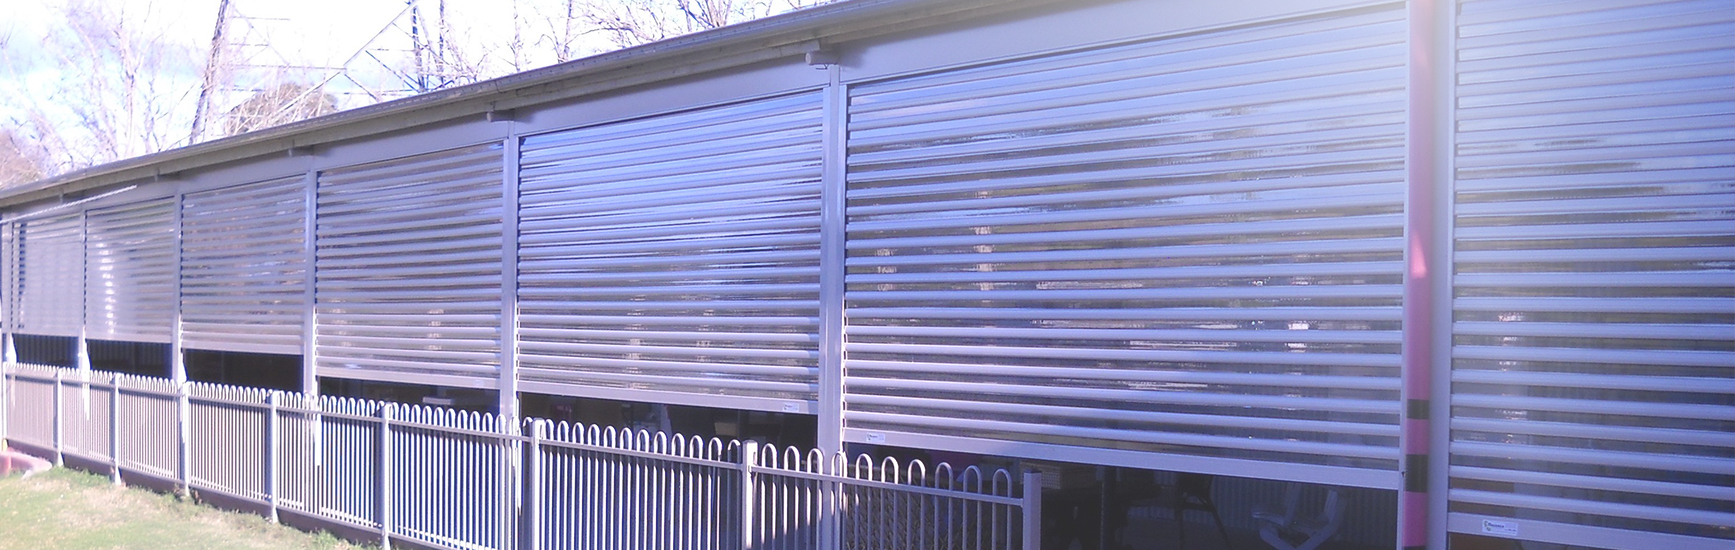 DAY CARE / CHILD CARE SHUTTERS